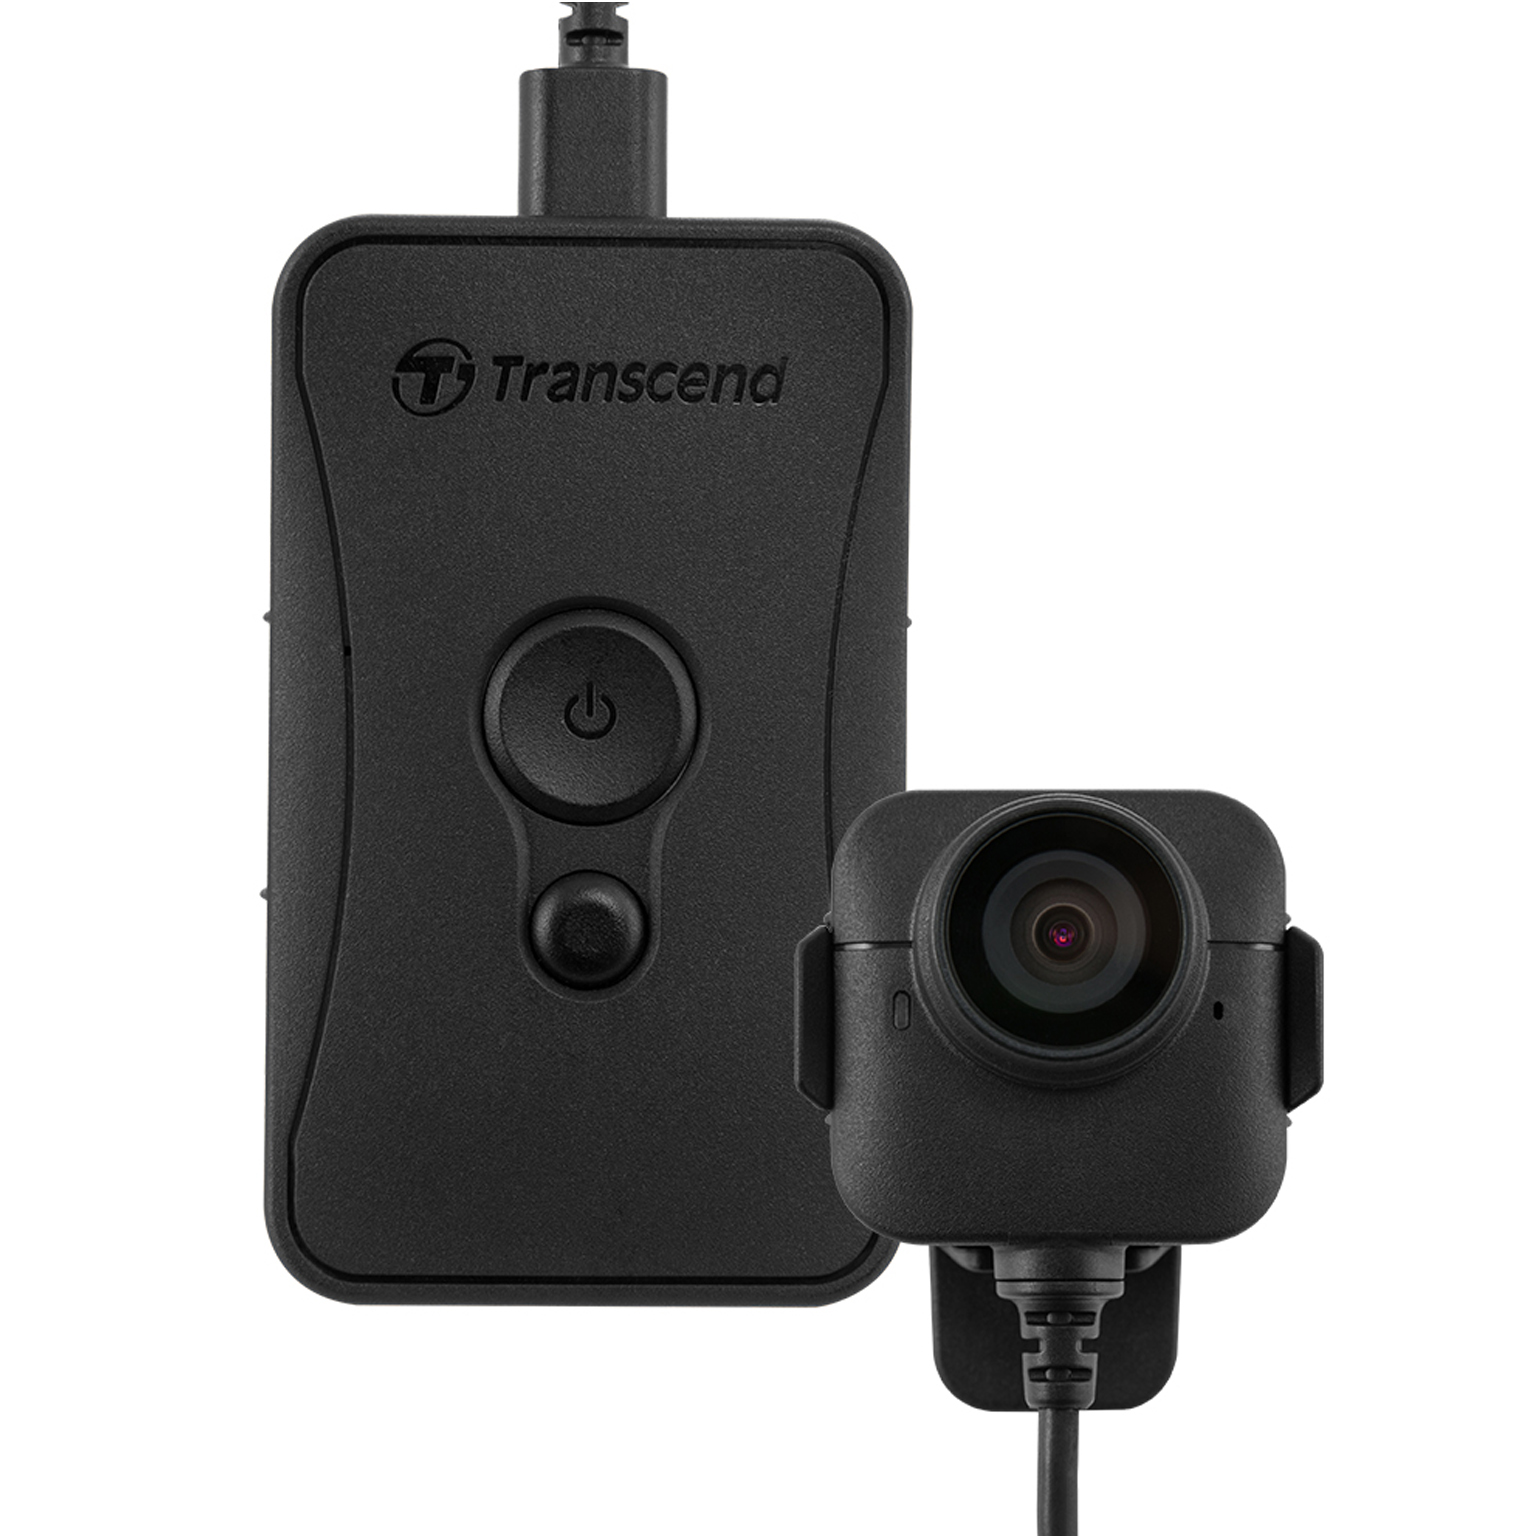 Body Camera / Transcend Information, Inc.